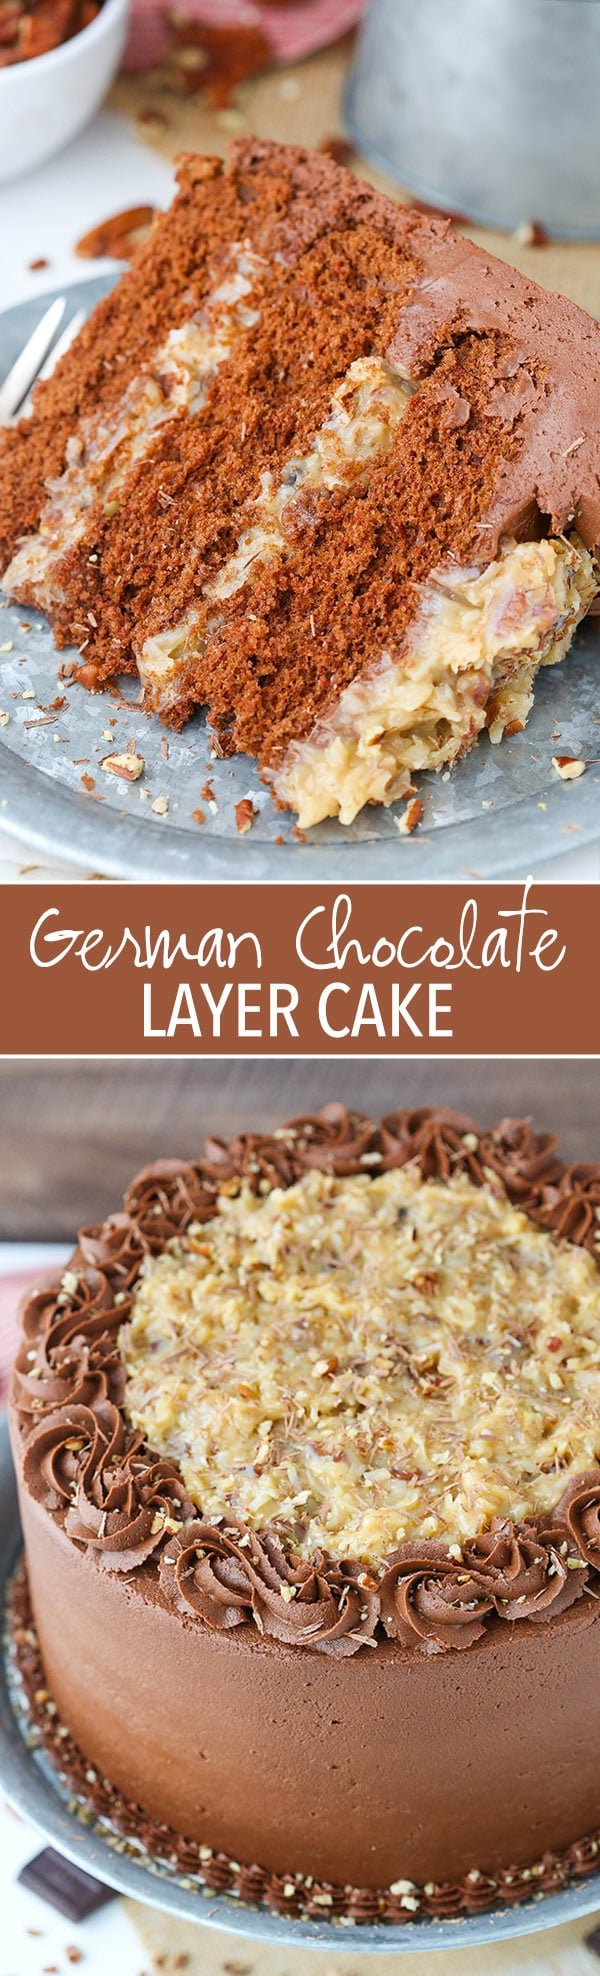 German Chocolate Layer Cake - the classic german chocolate cake with coconut pecan filling and chocolate frosting!